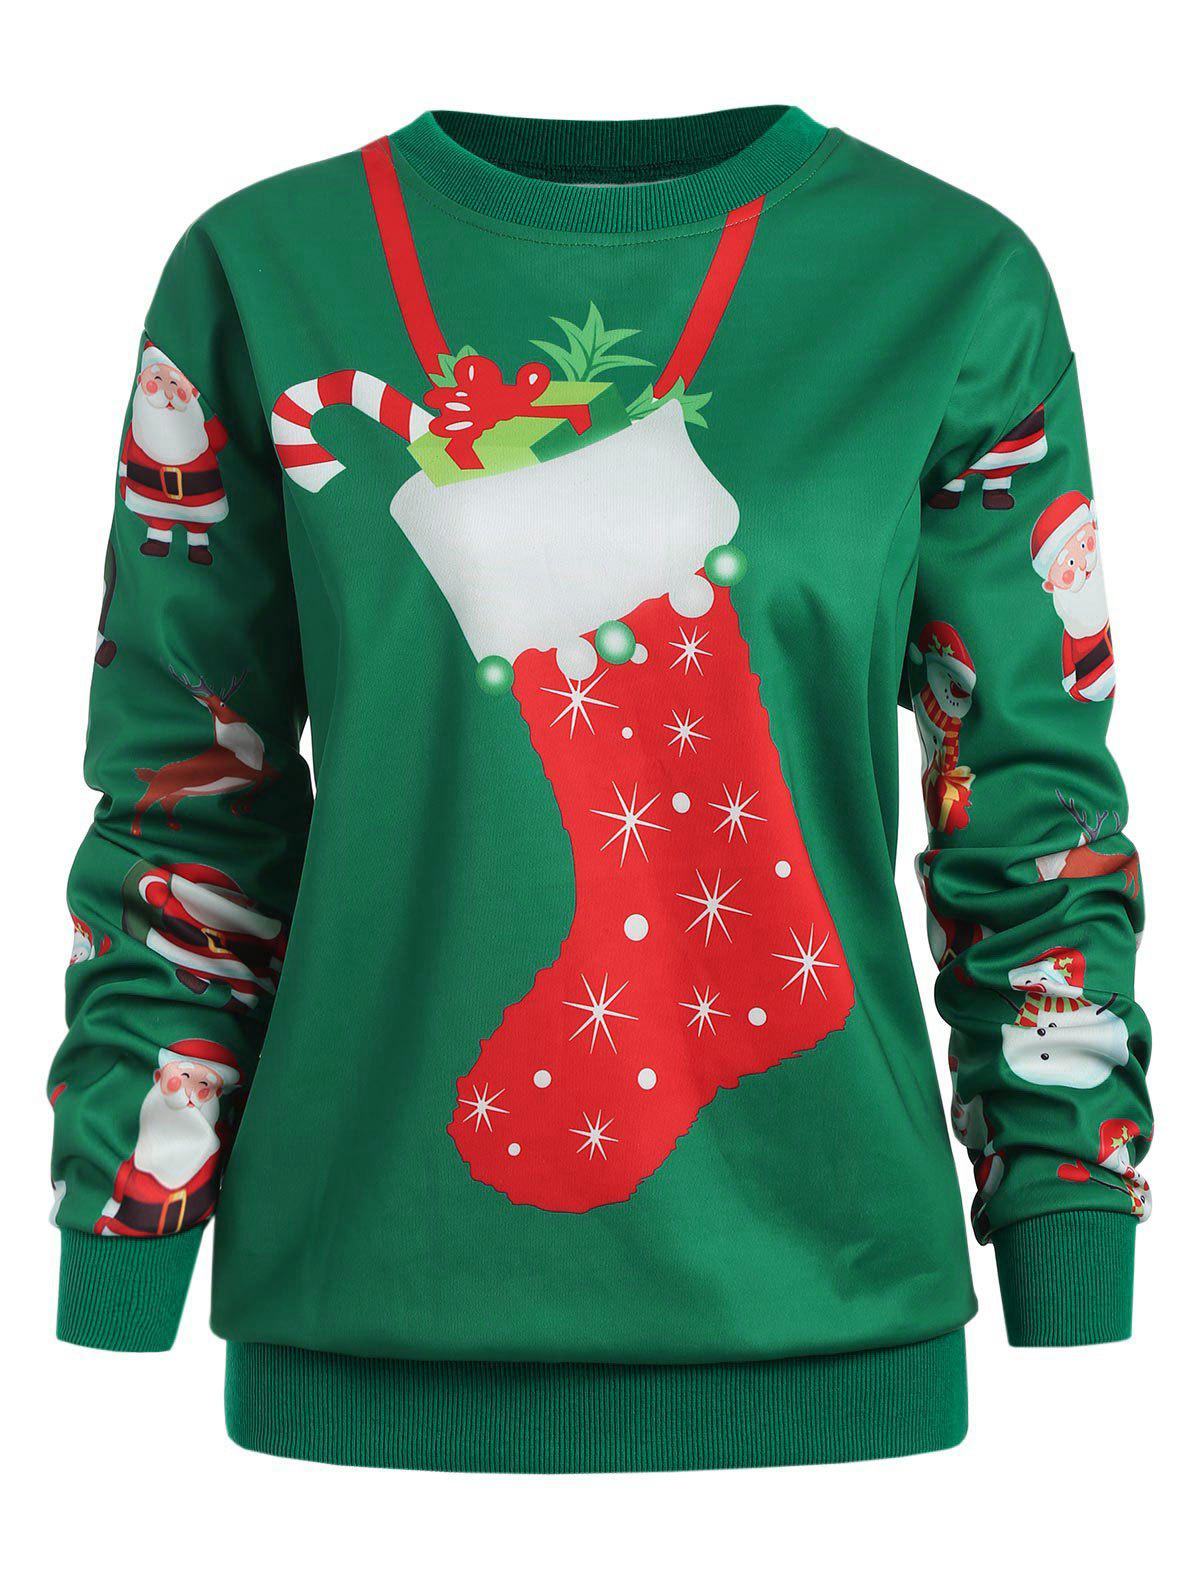 Christmas Socks Print Plus Size Sweatshirt - GREEN 3X